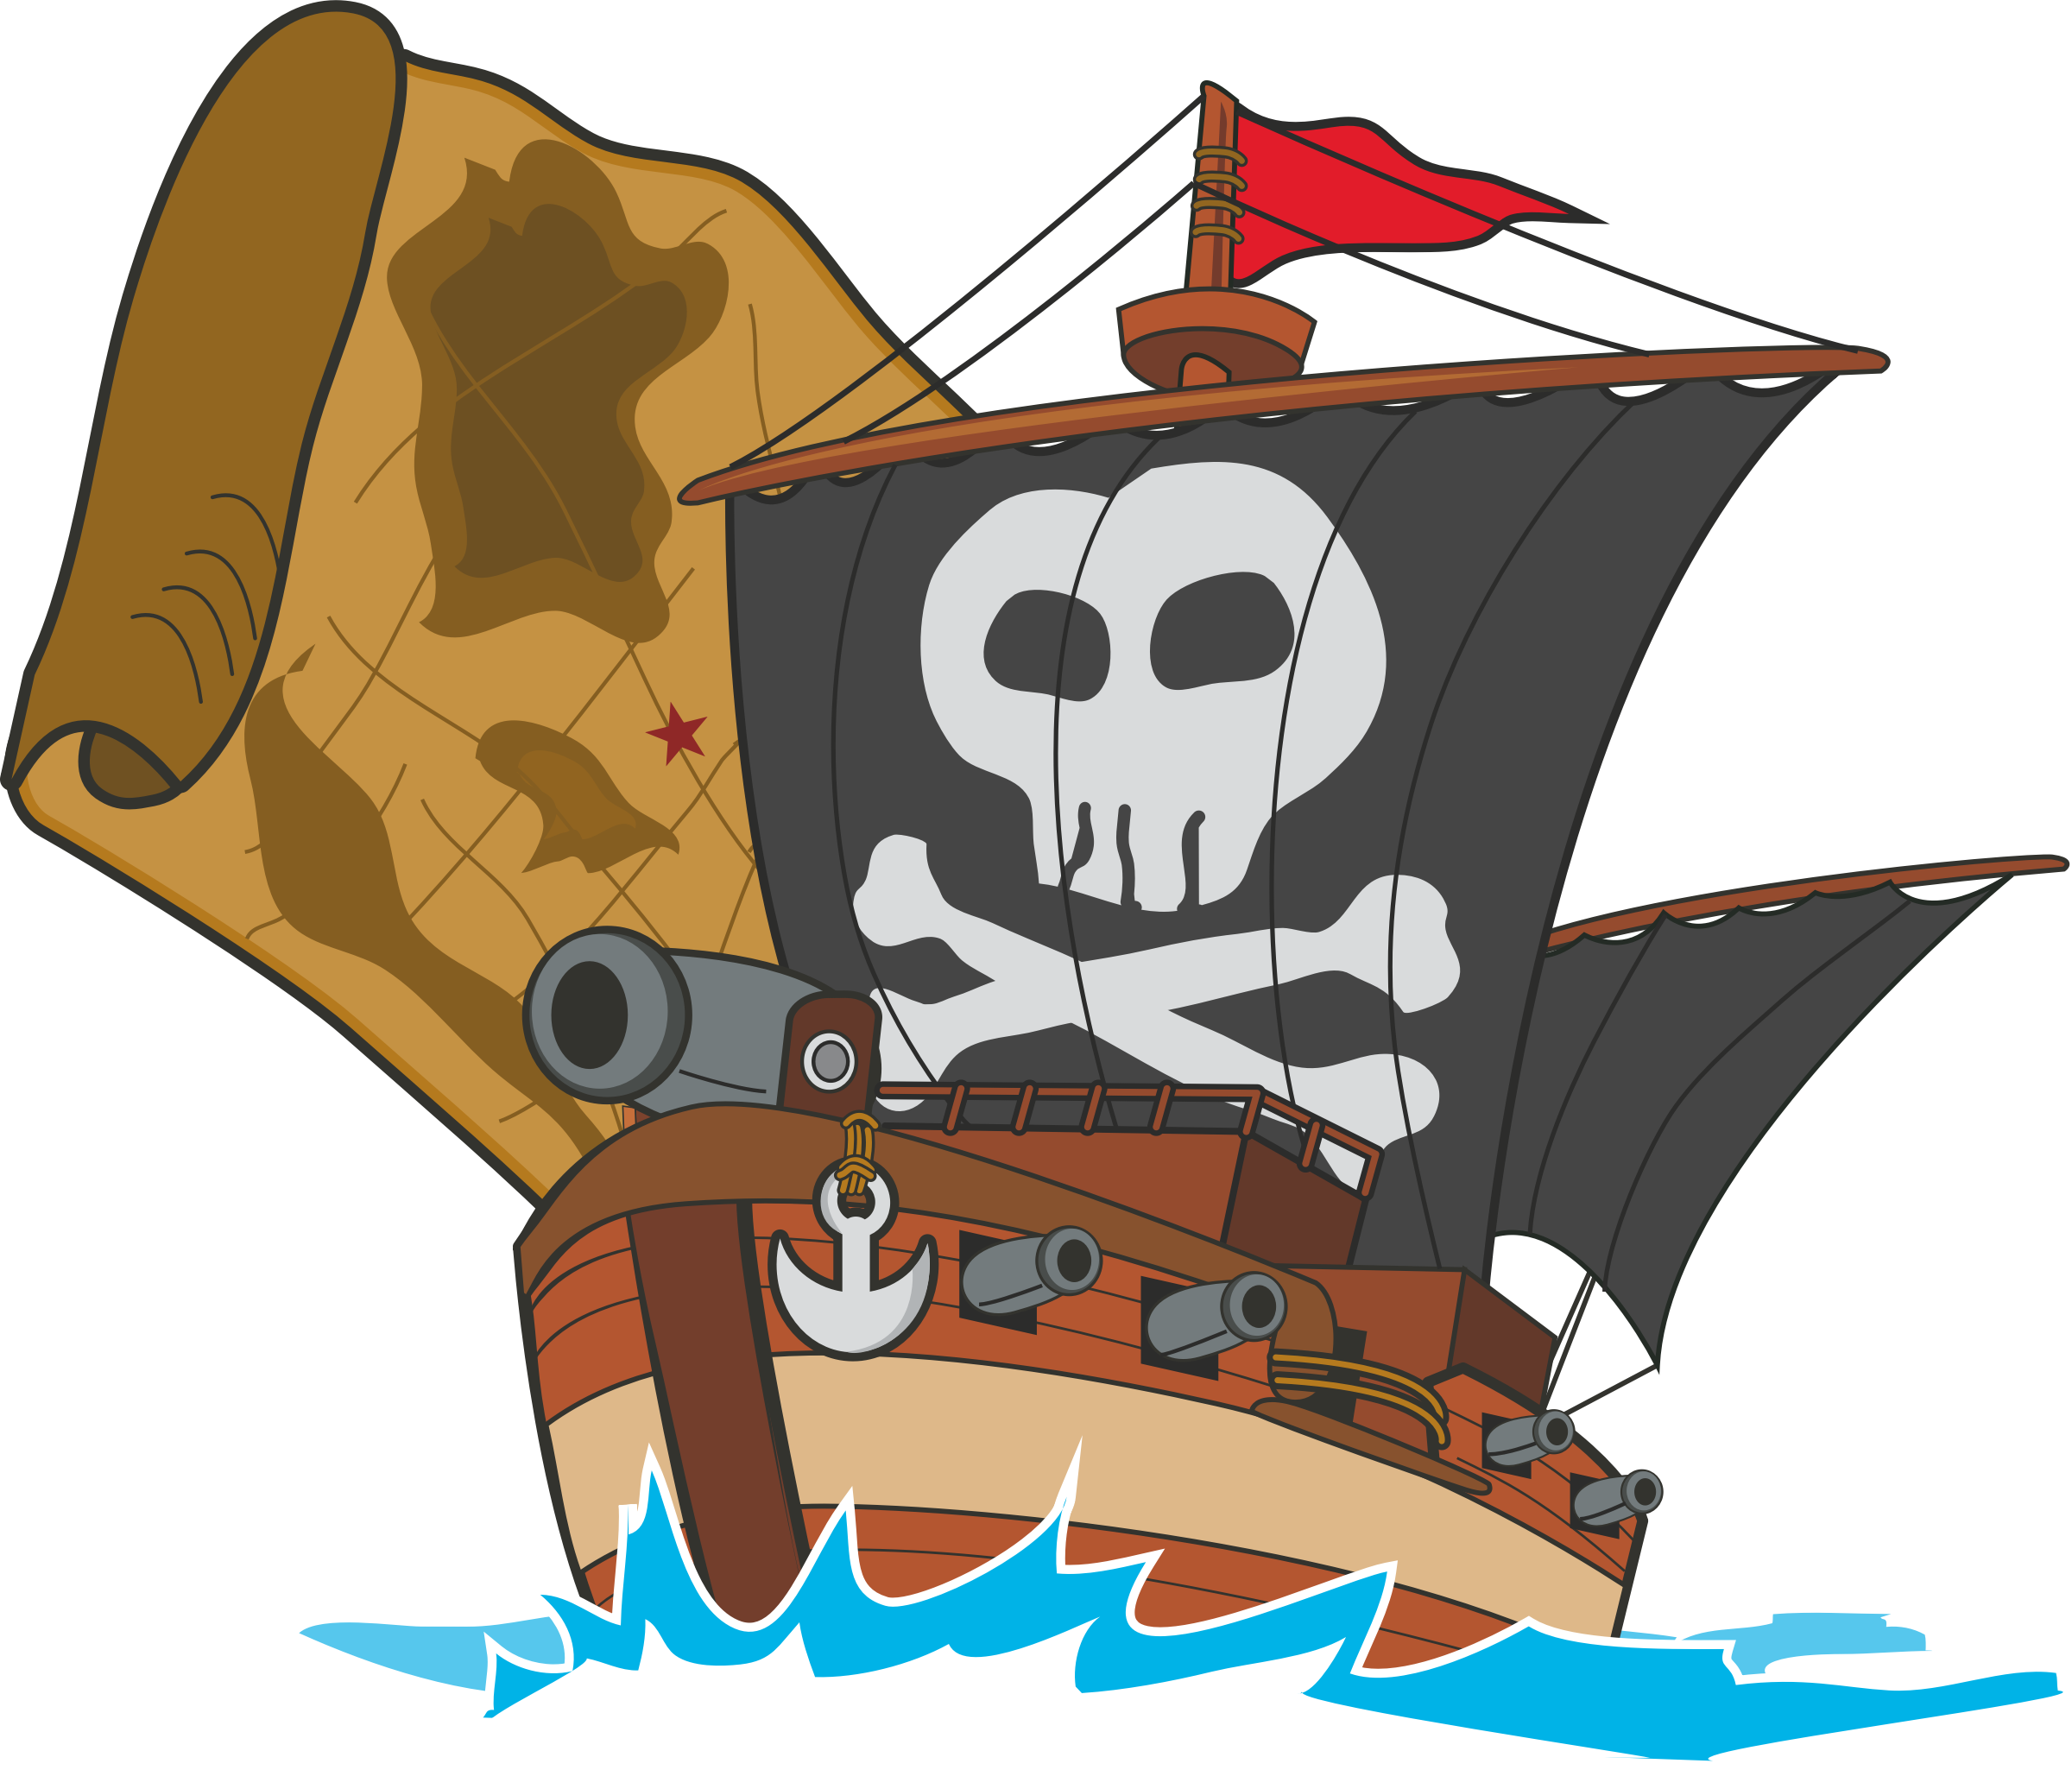 Pirate cannon clipart png image. Ship big